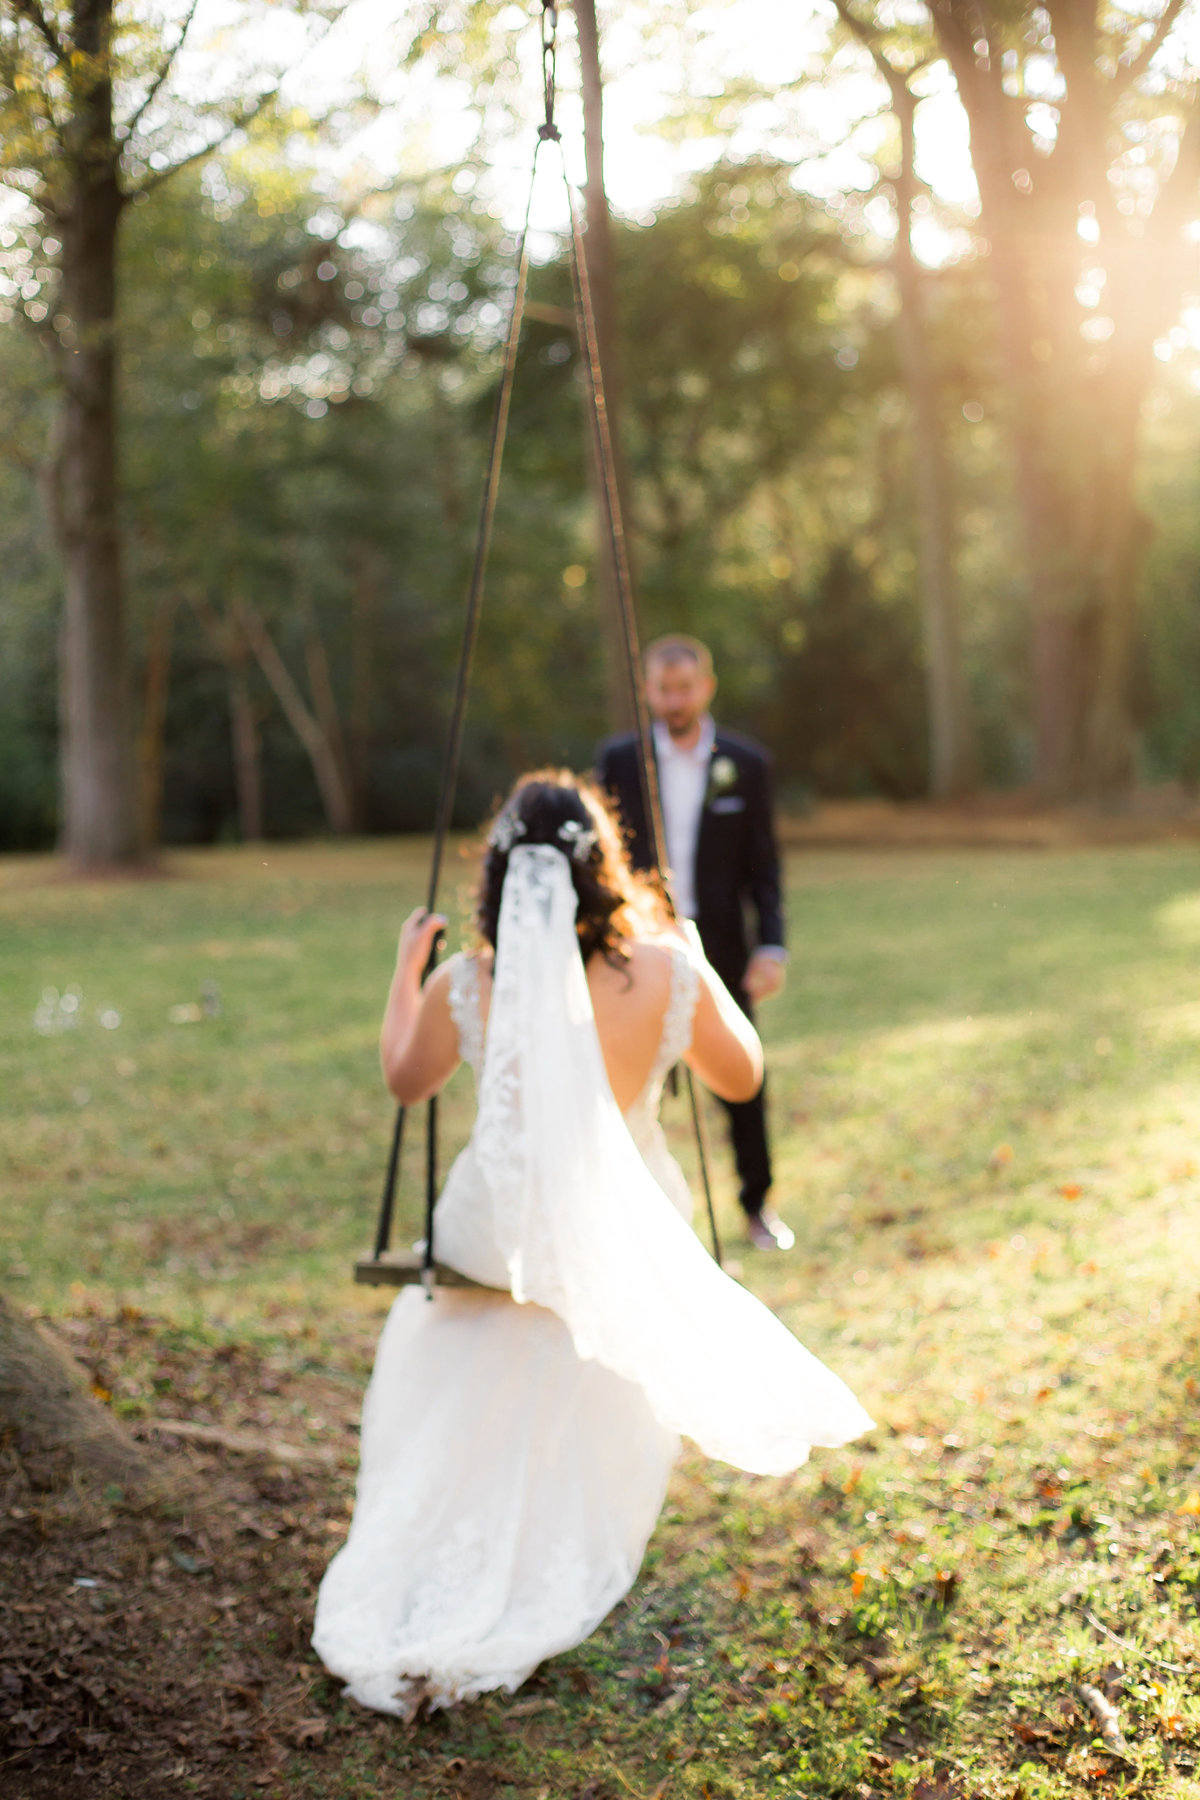 groom pushes bride on swing while sun shines down for wedding photographer